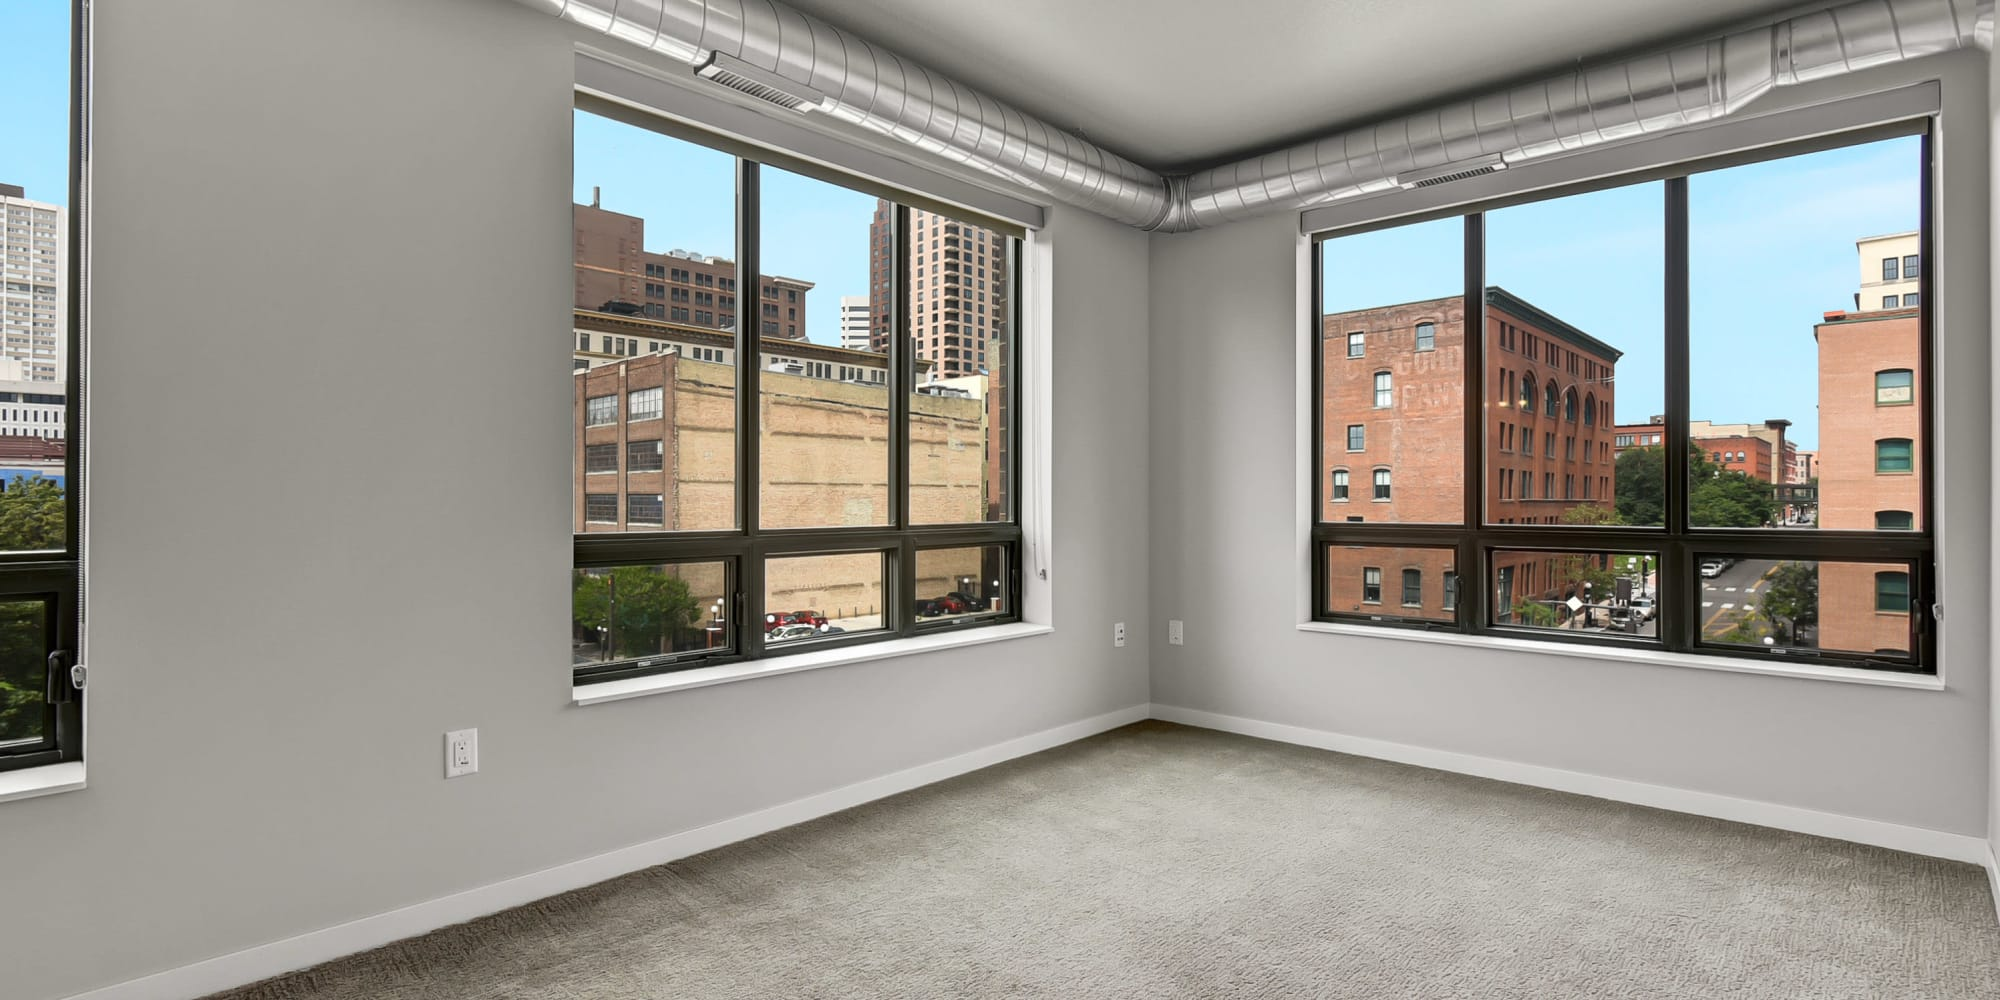 Downtown St Paul Mn Apartments For Rent In Lowertown Oaks Union Depot